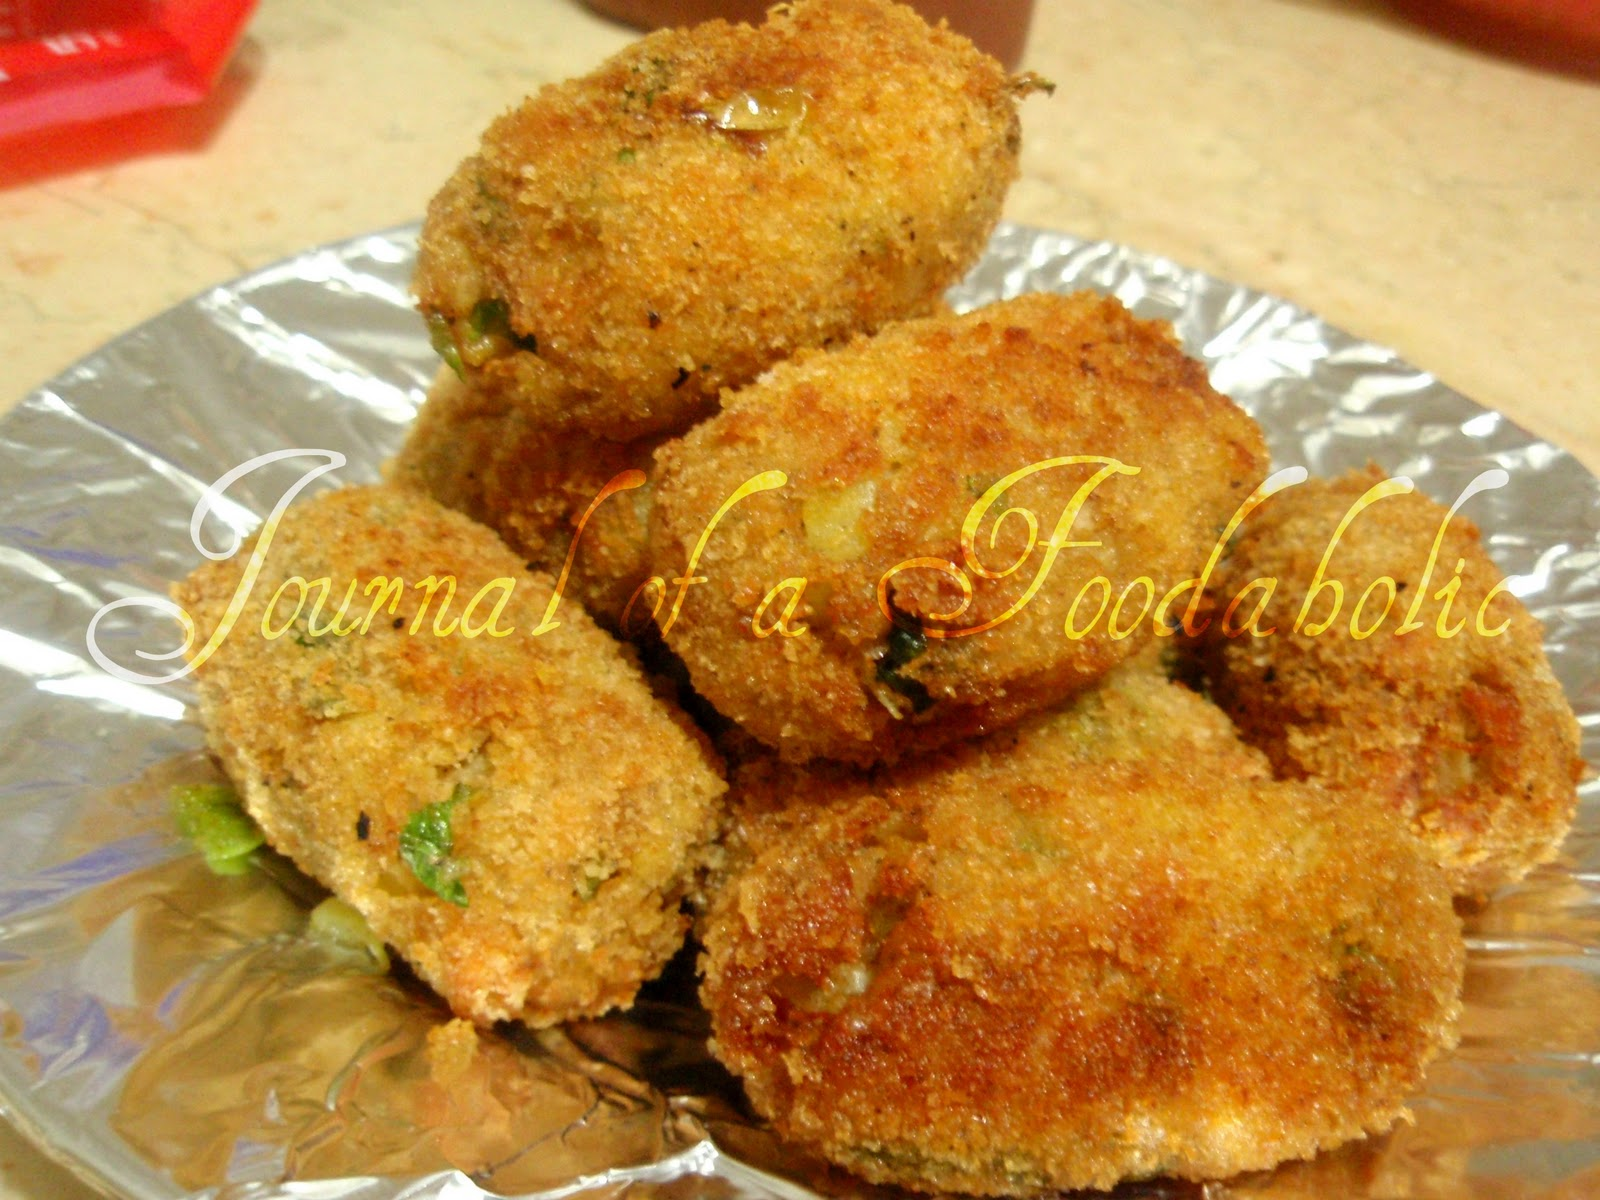 Journal of a Foodaholic: Chicken and Potato Croquettes